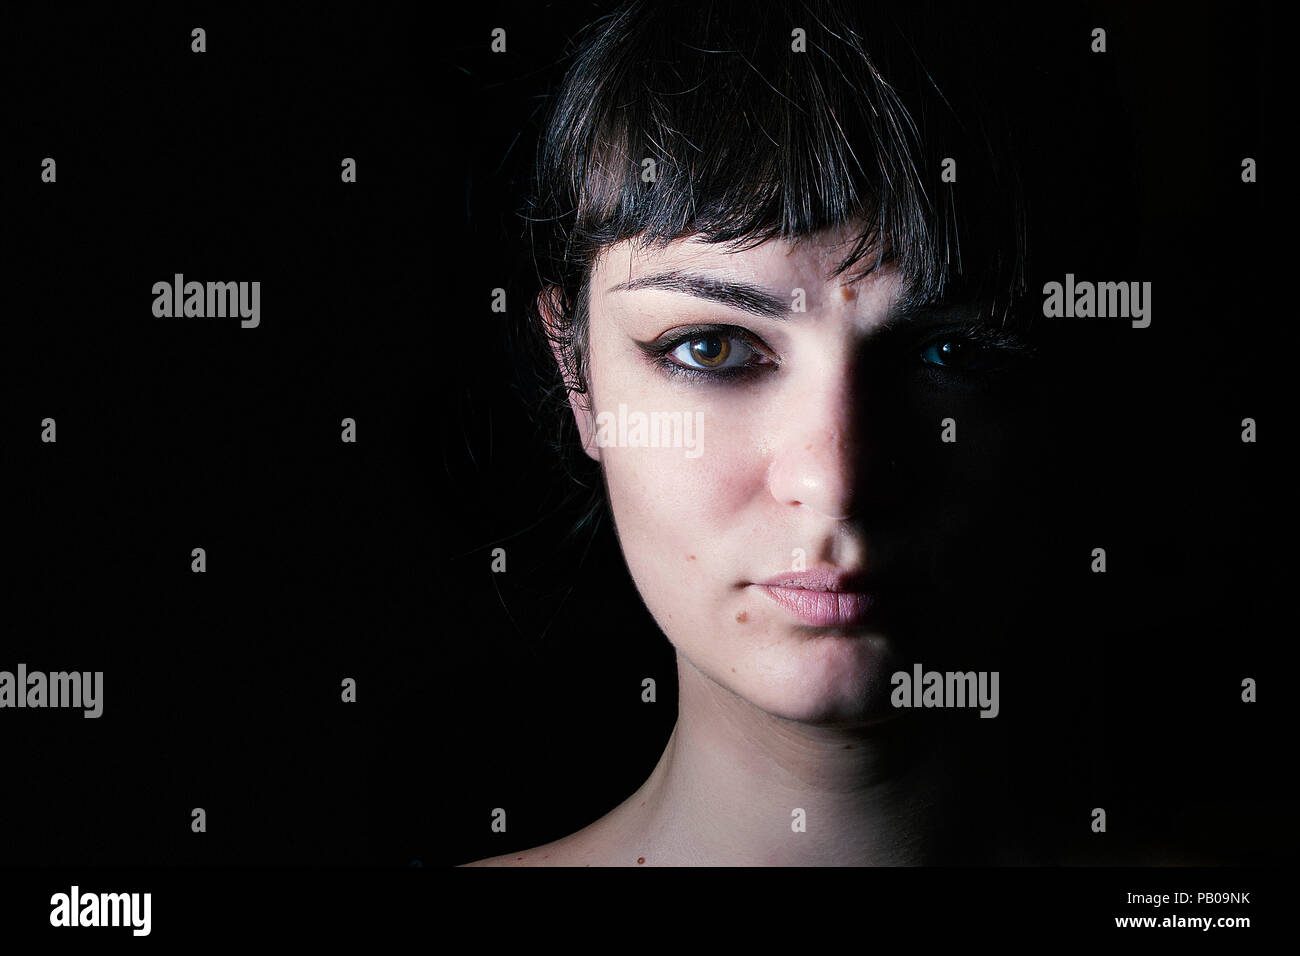 Portrait of a woman in the shadows - Stock Image